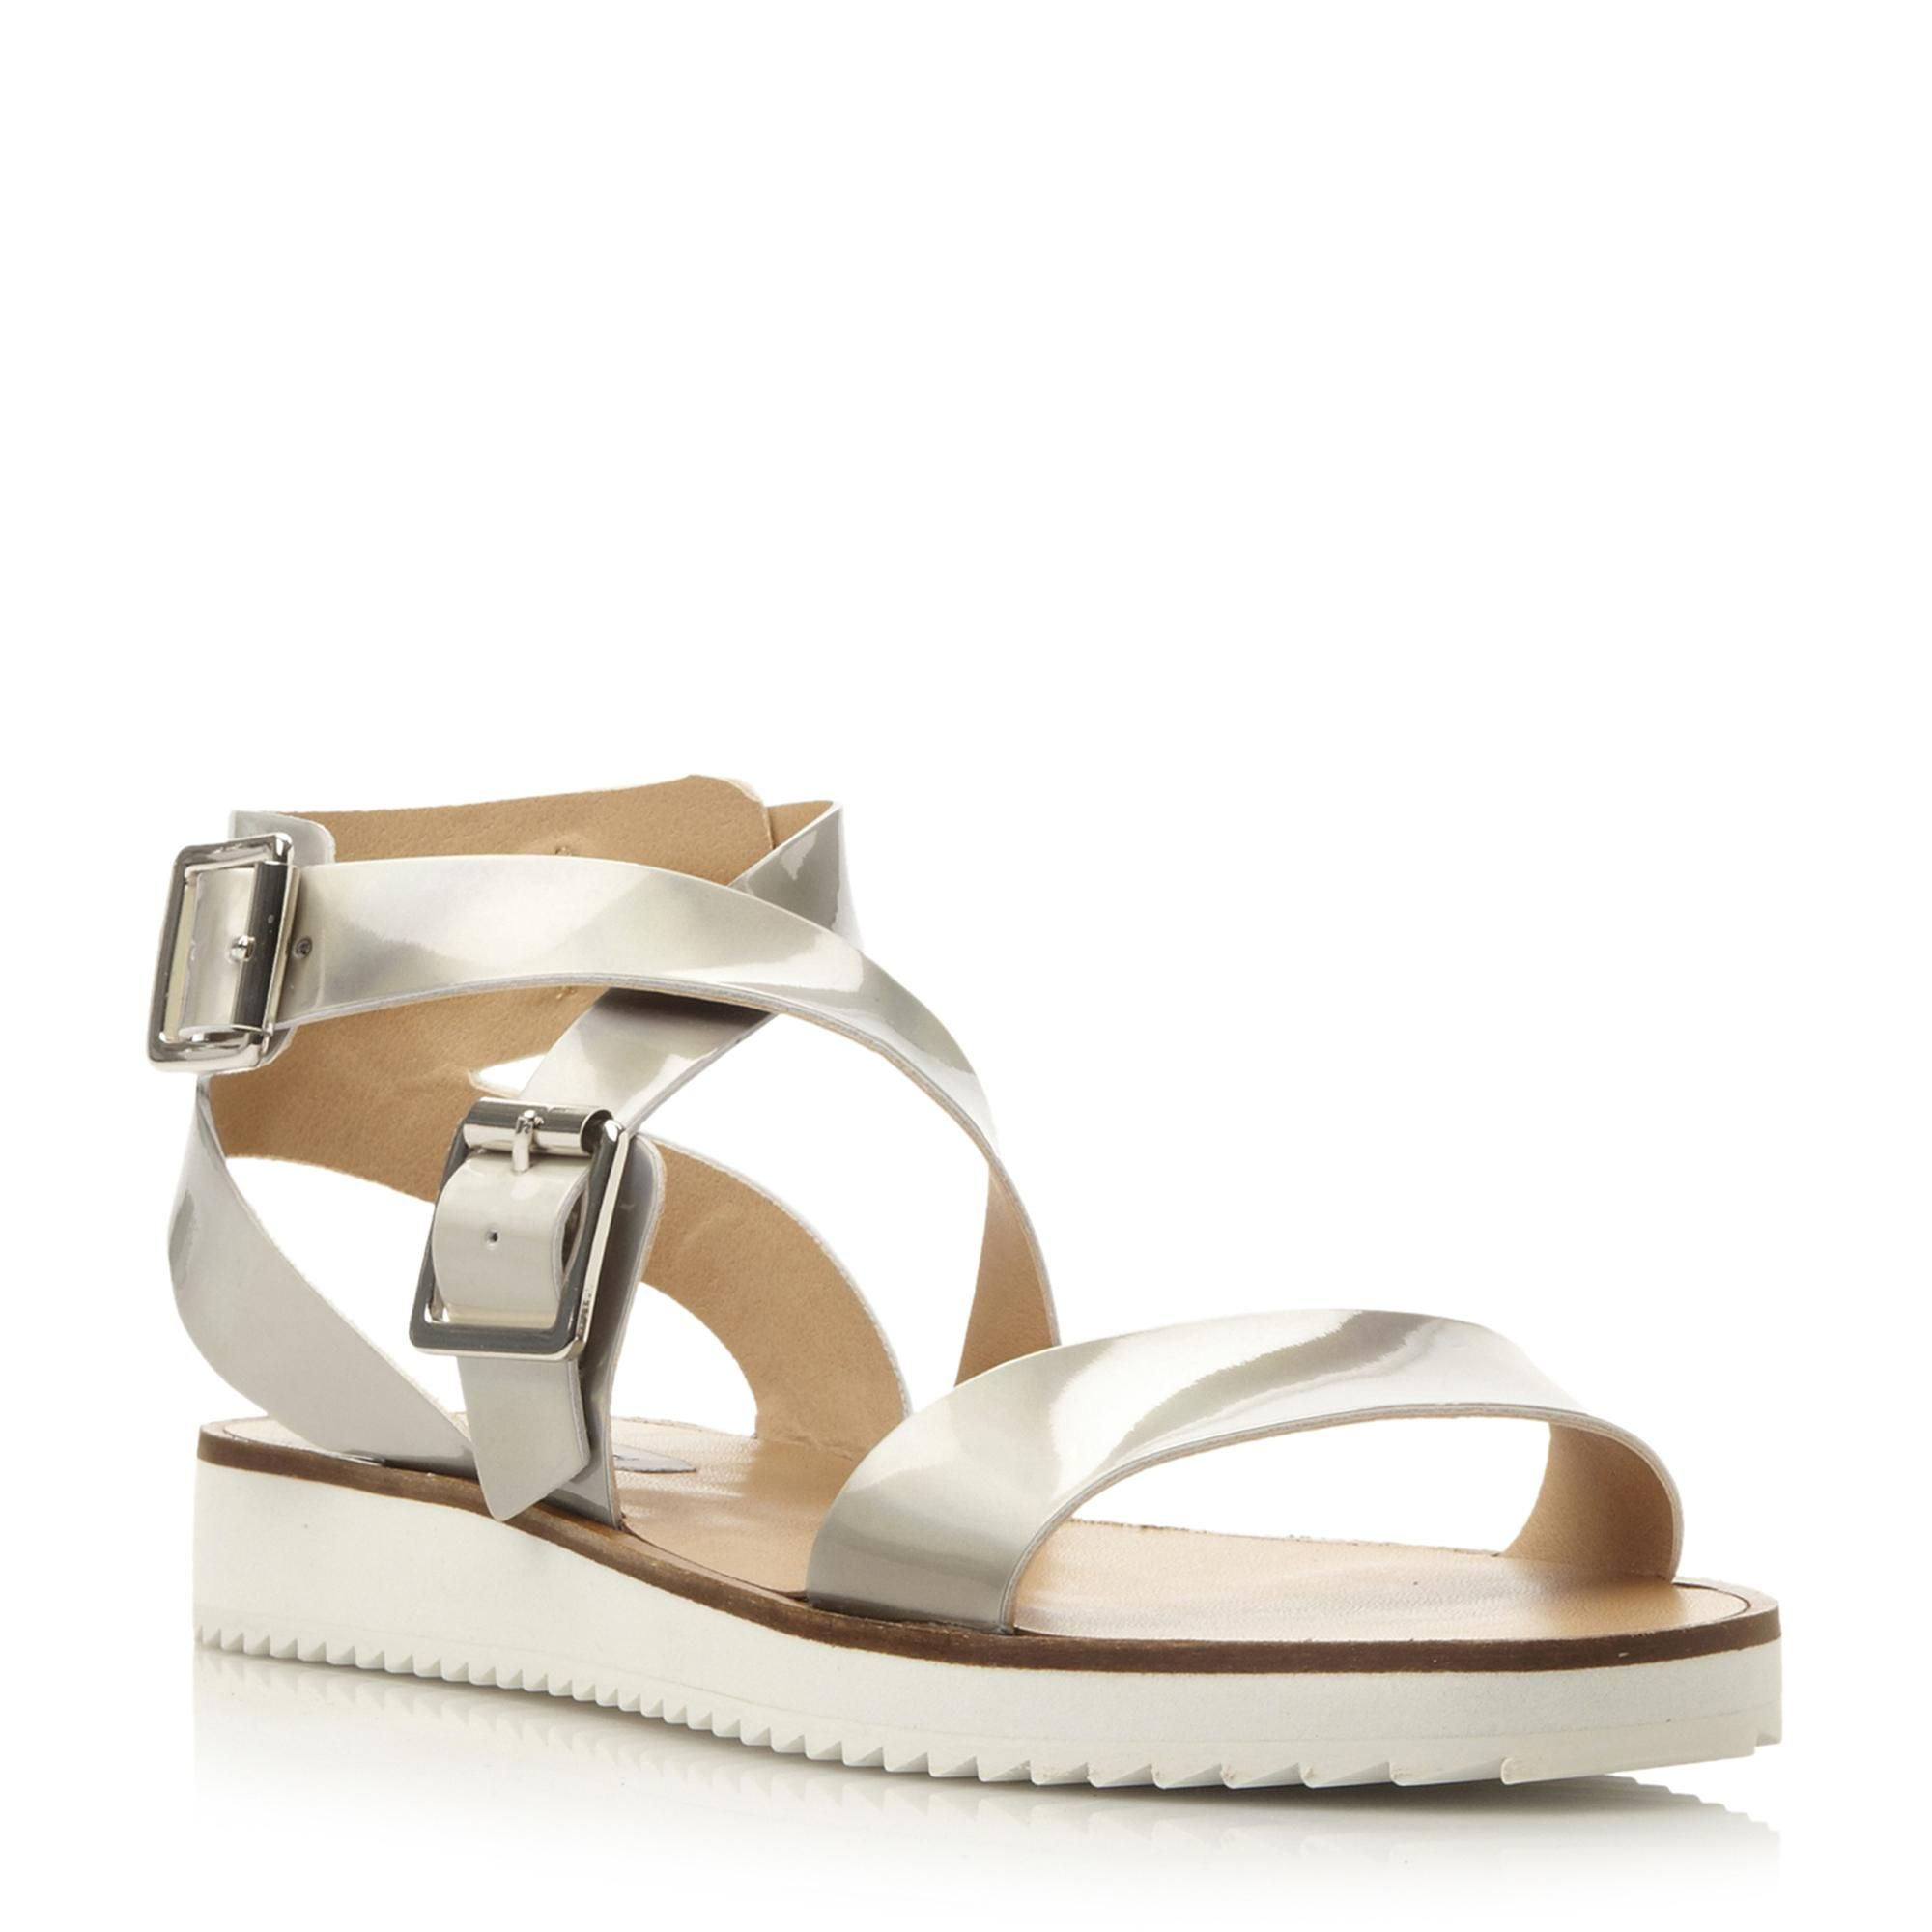 ebfb6f5aa24 STEVE MADDEN MELLLOW SM - Shark Sole Strappy Flat Sandal - silver ...